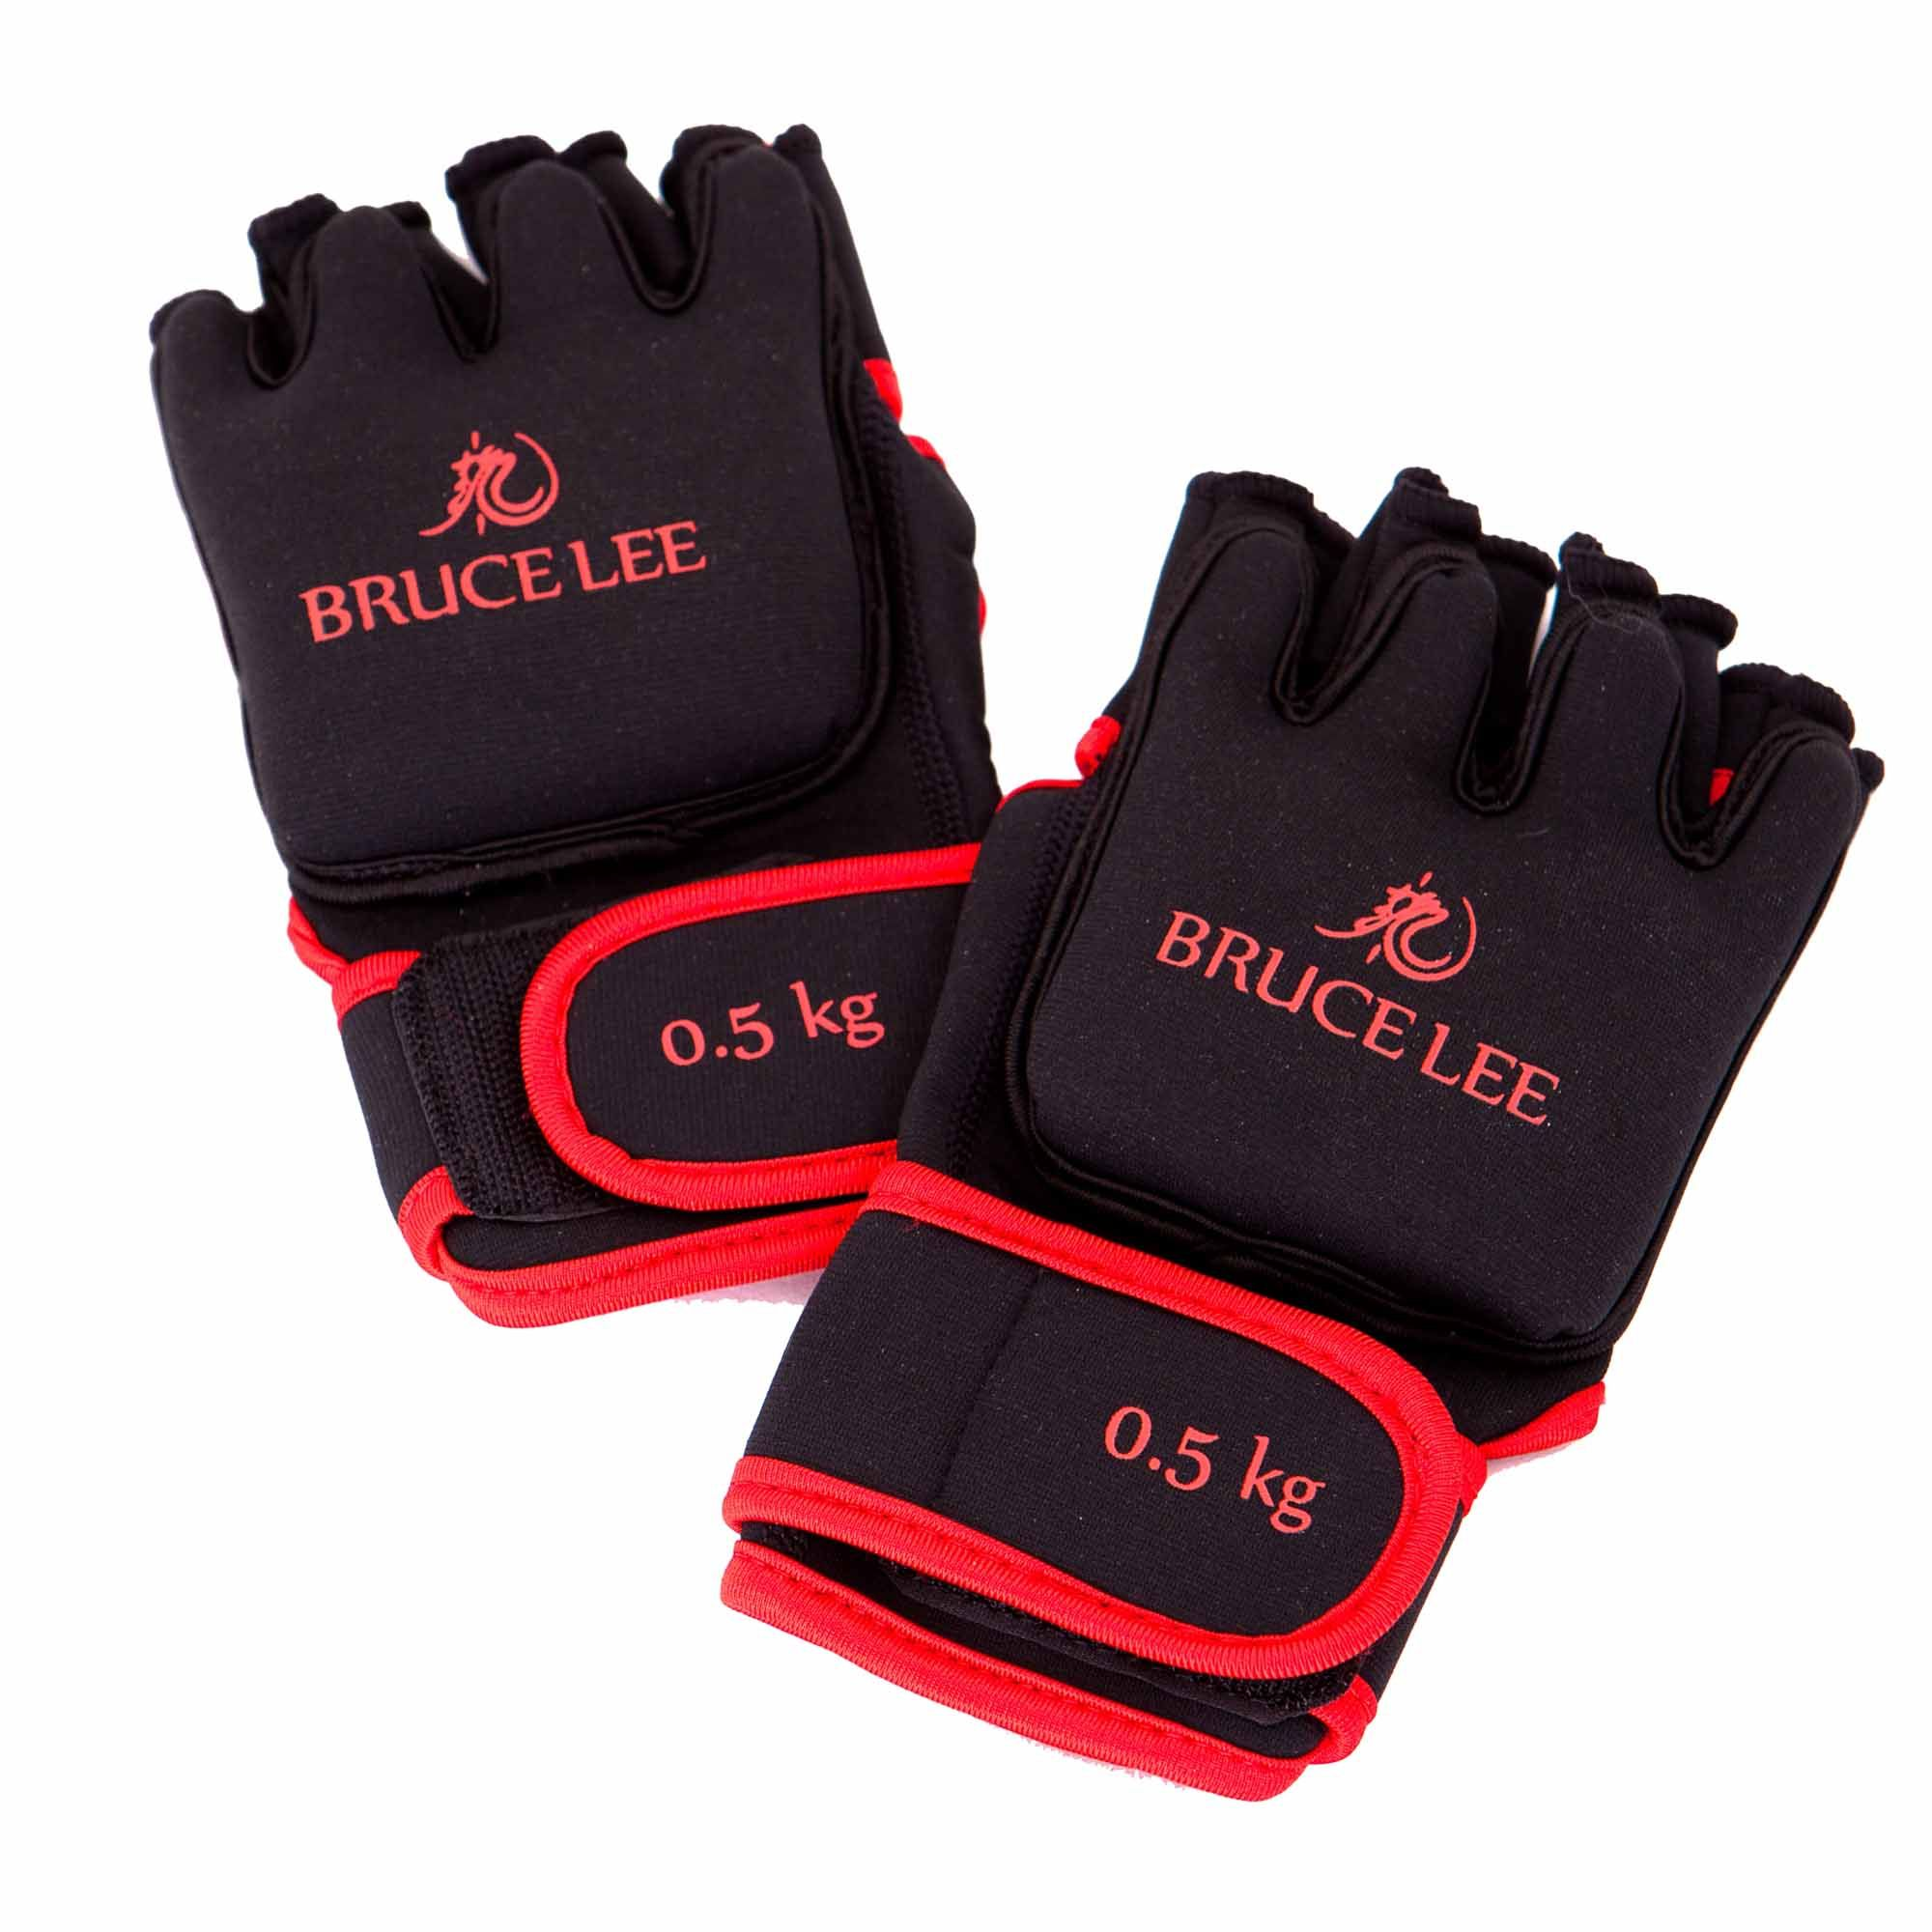 Deluxe Weight Lifting Gloves St12007: Marcy Bruce Lee Dragon Deluxe 0.5kg Weighted Gloves